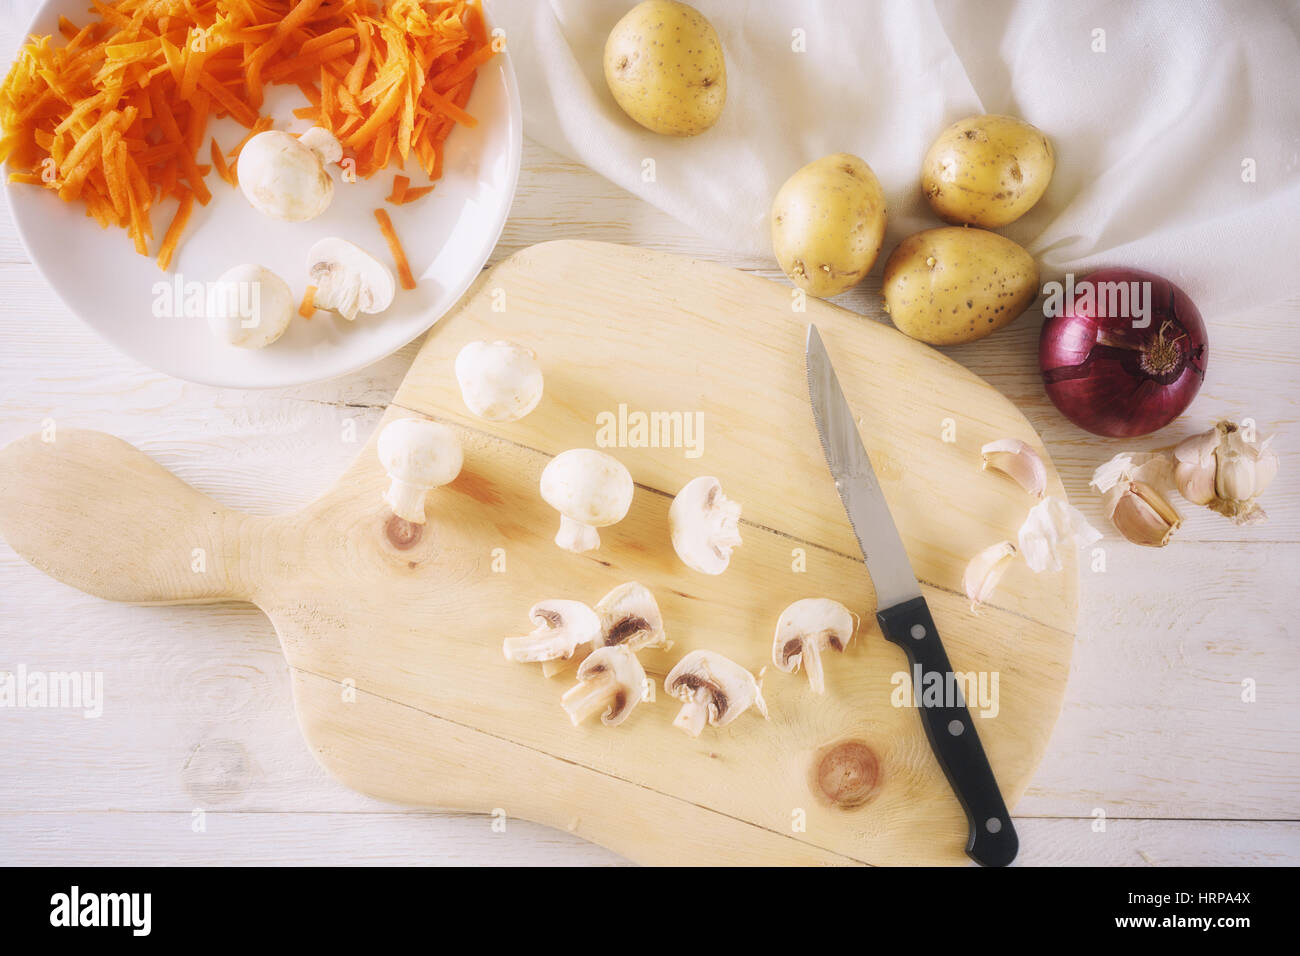 Ingredients for soup, sliced mushrooms. Top view - Stock Image